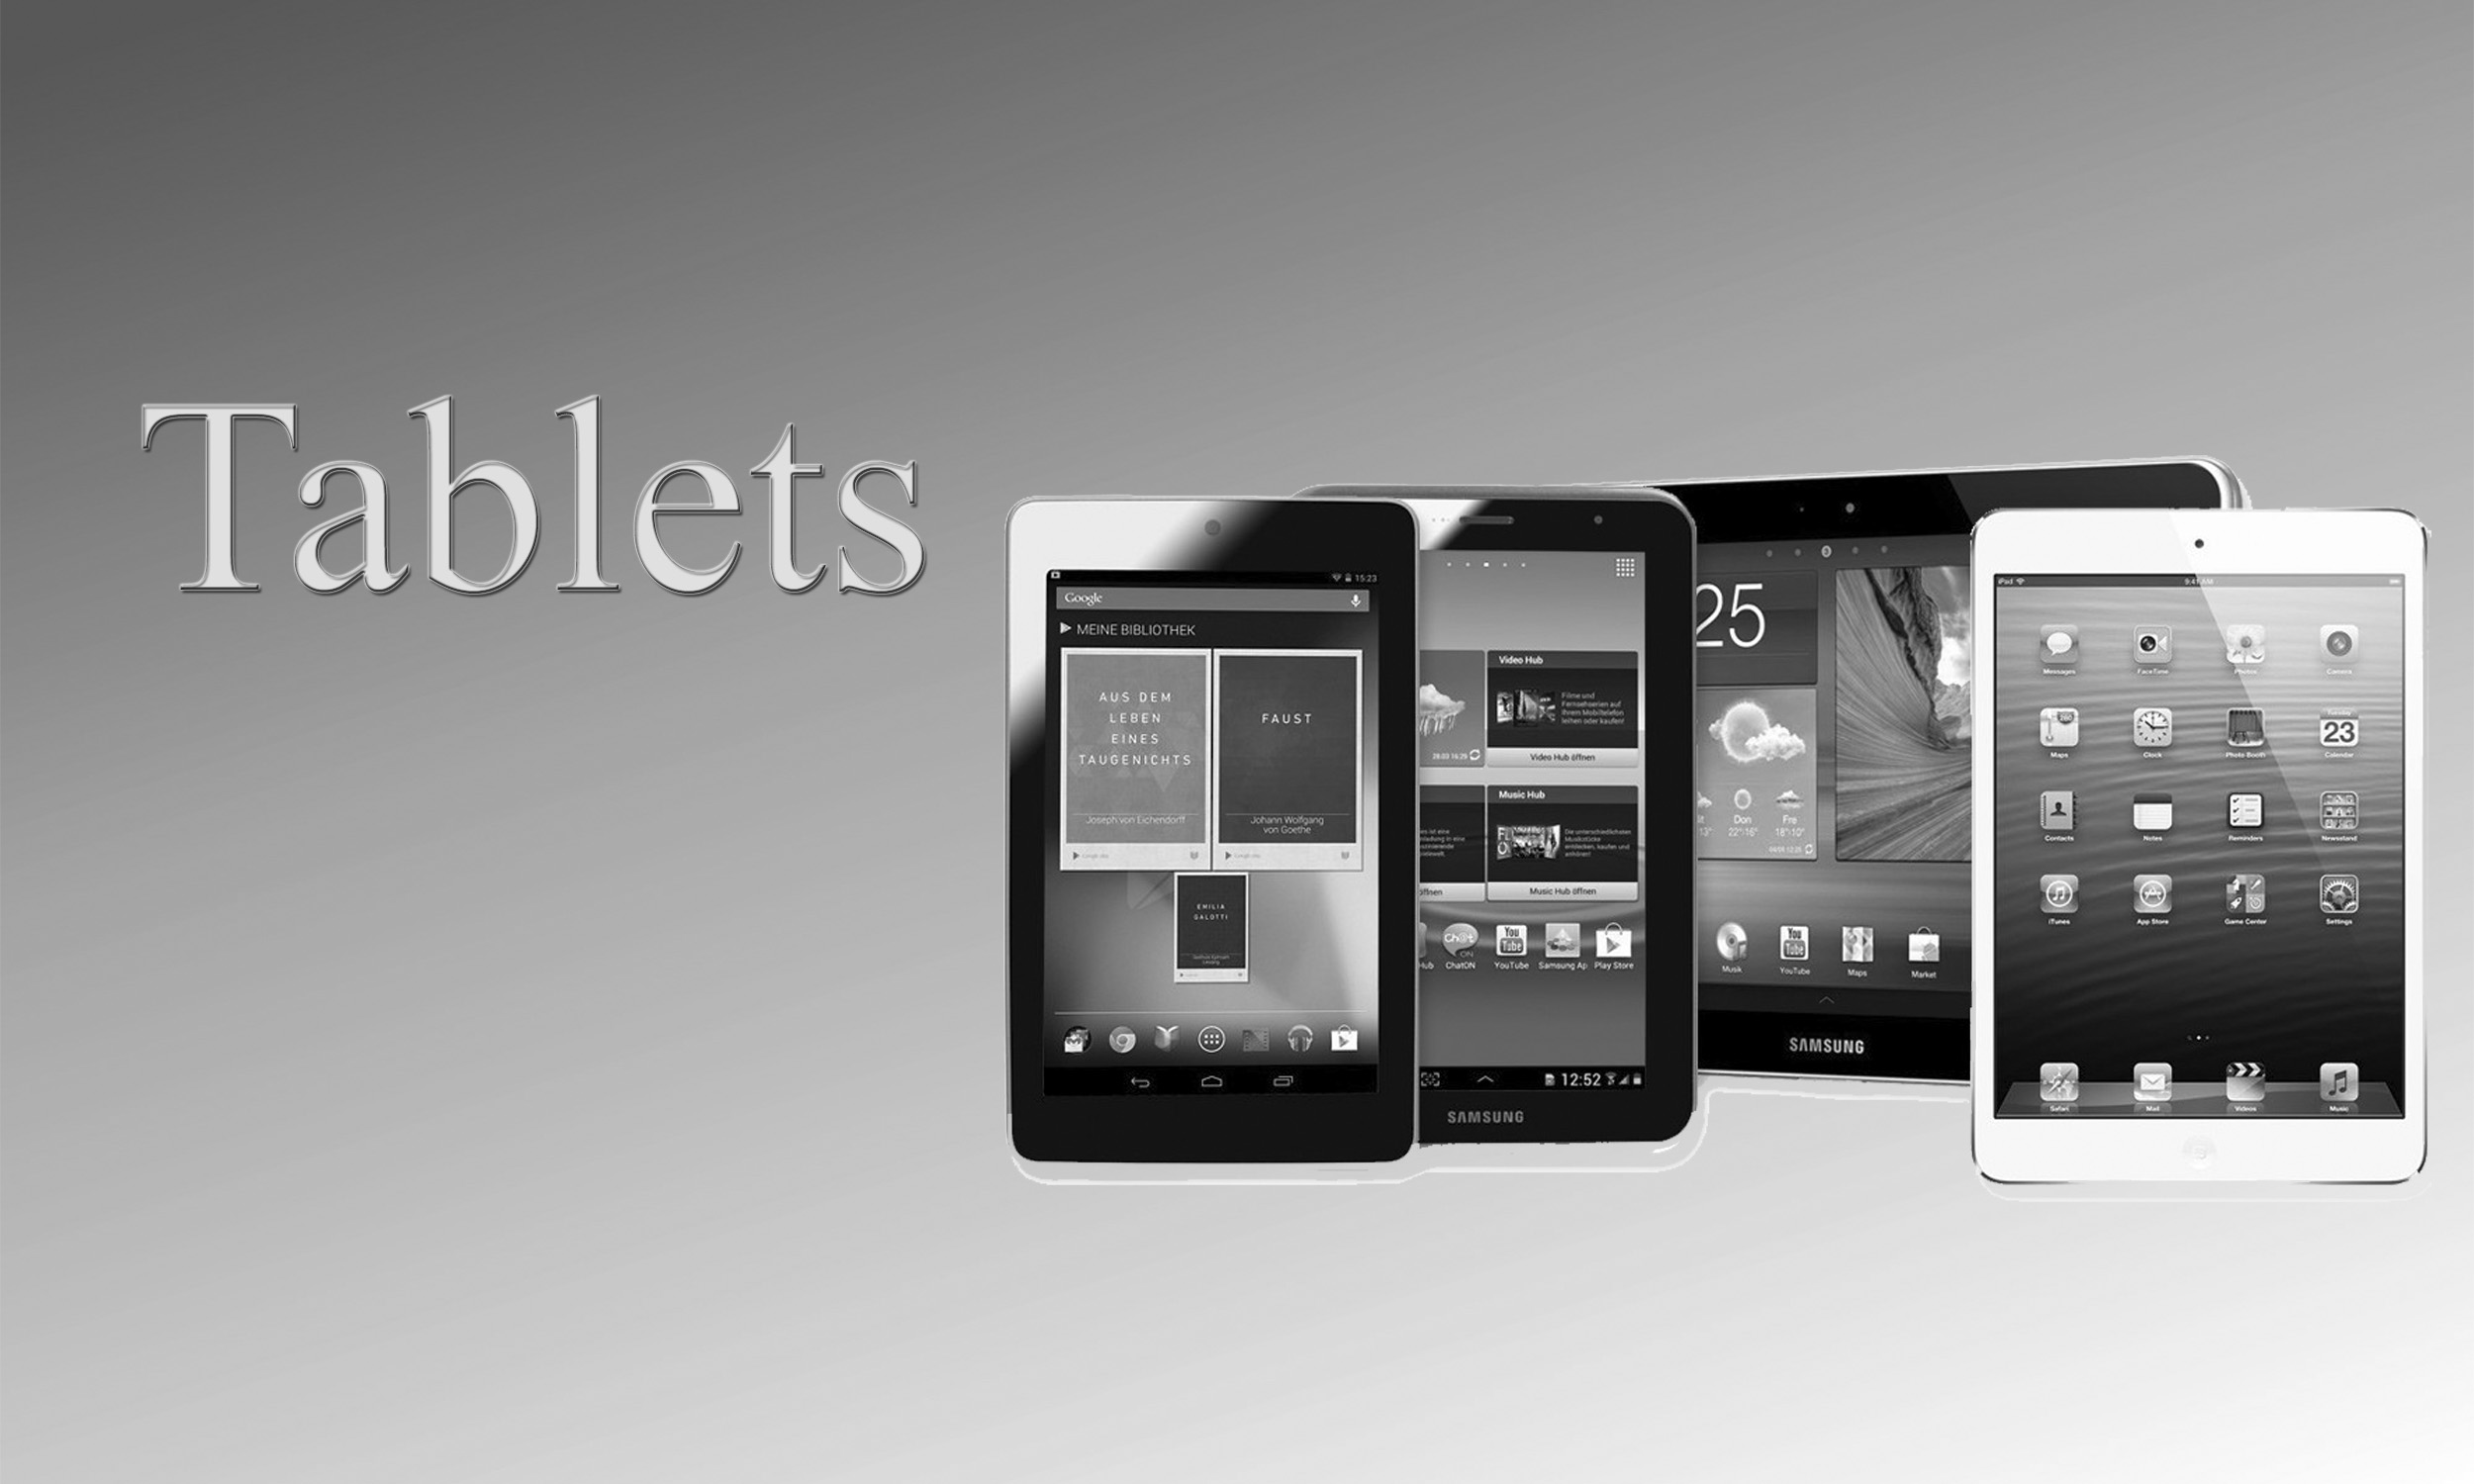 tablets Slideshow 1